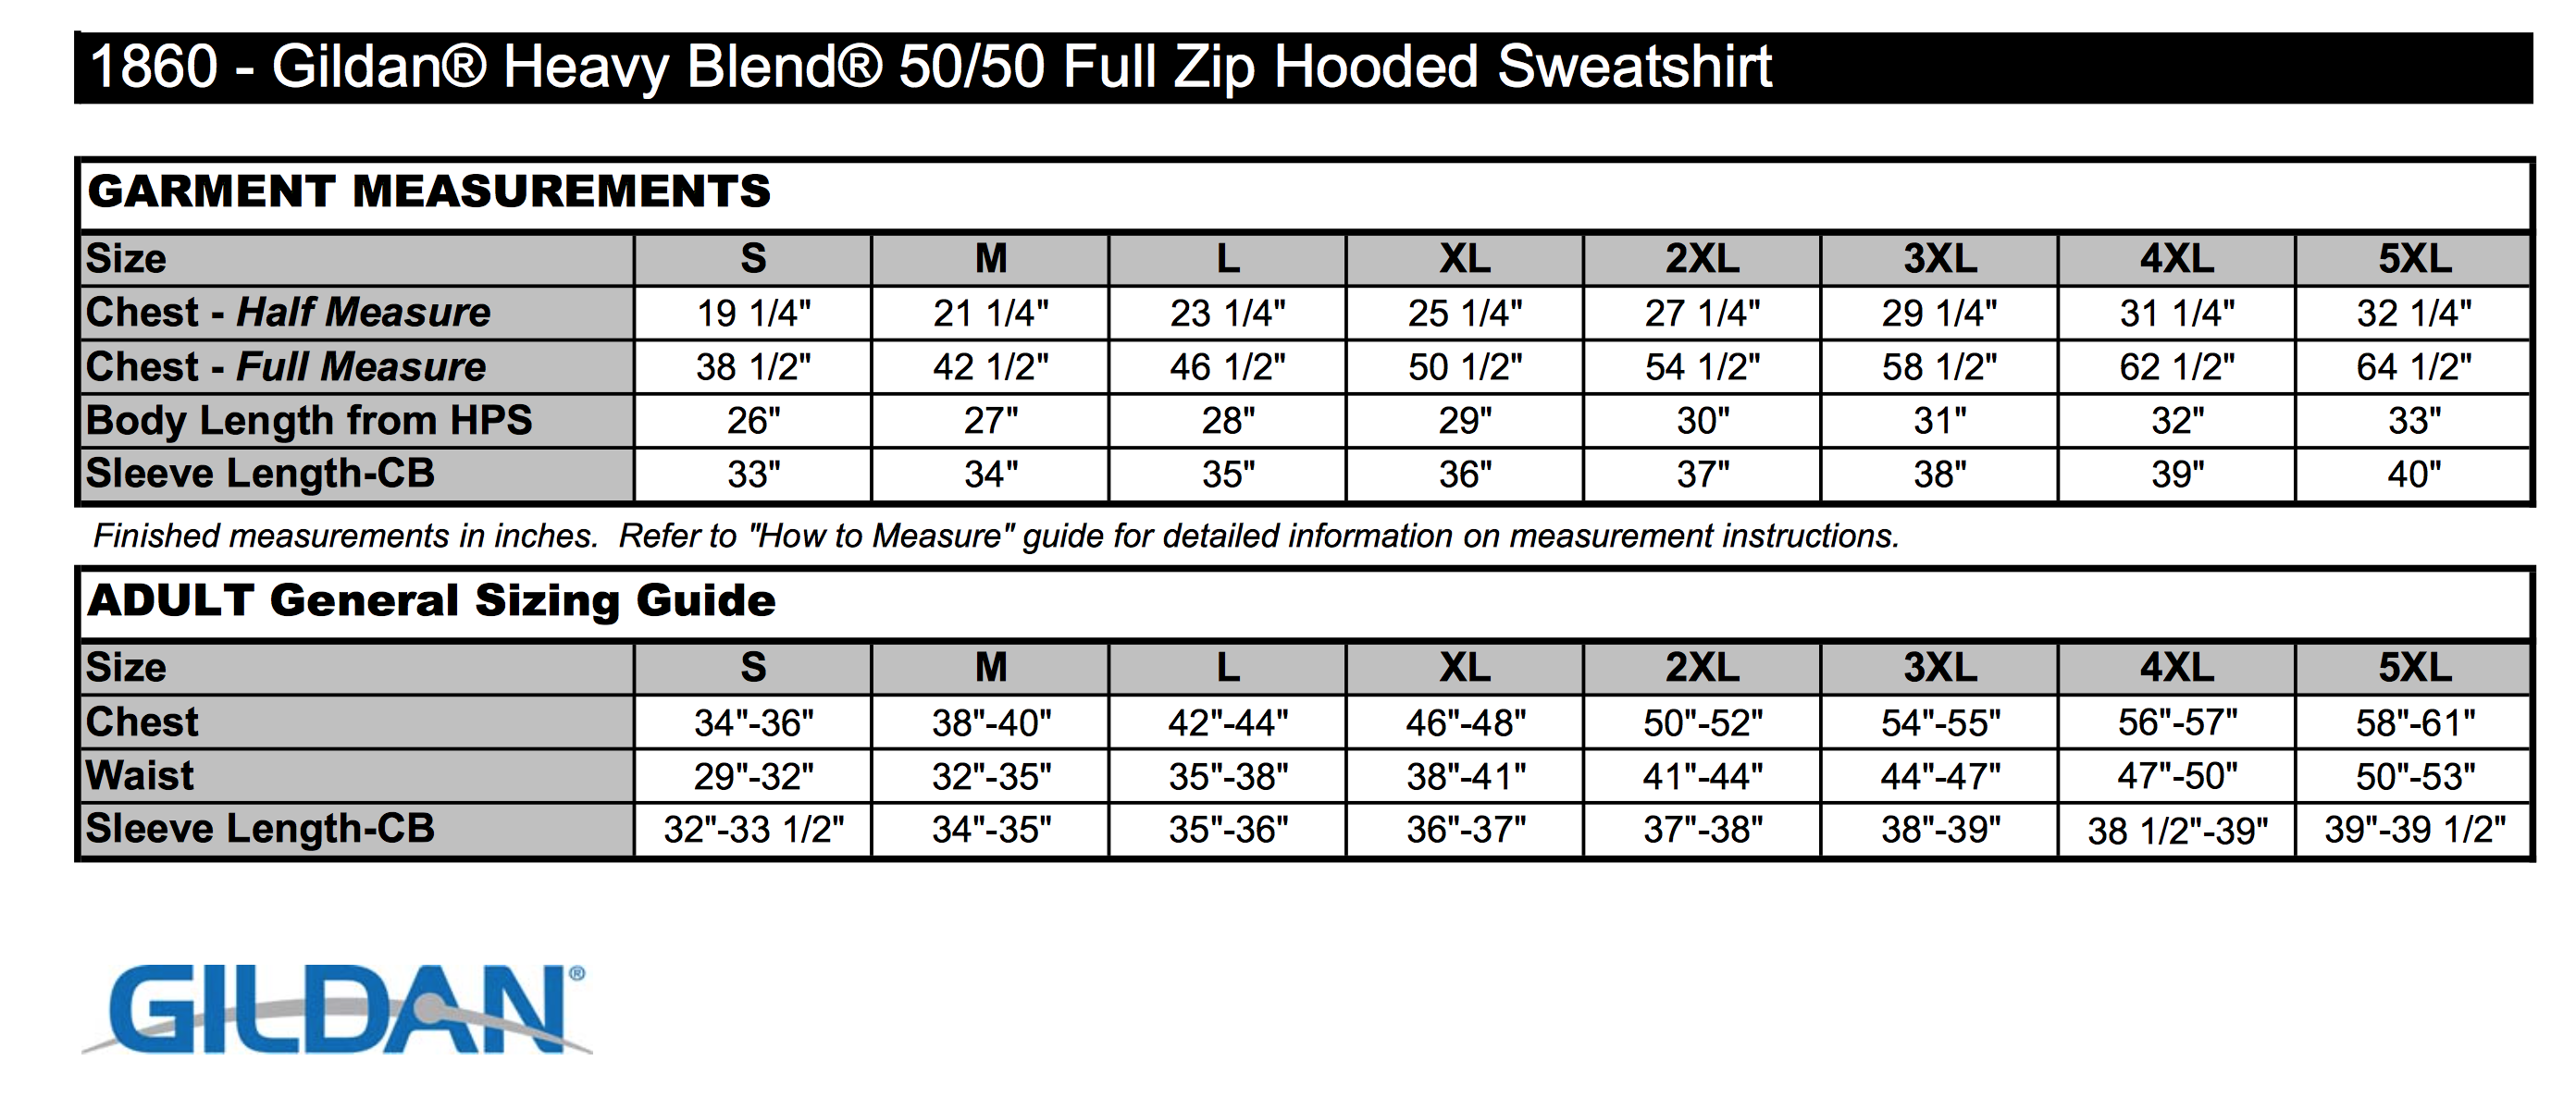 Forest heavy blend full zip hooded sweatshirt t shirts for Gildan brand t shirt size chart